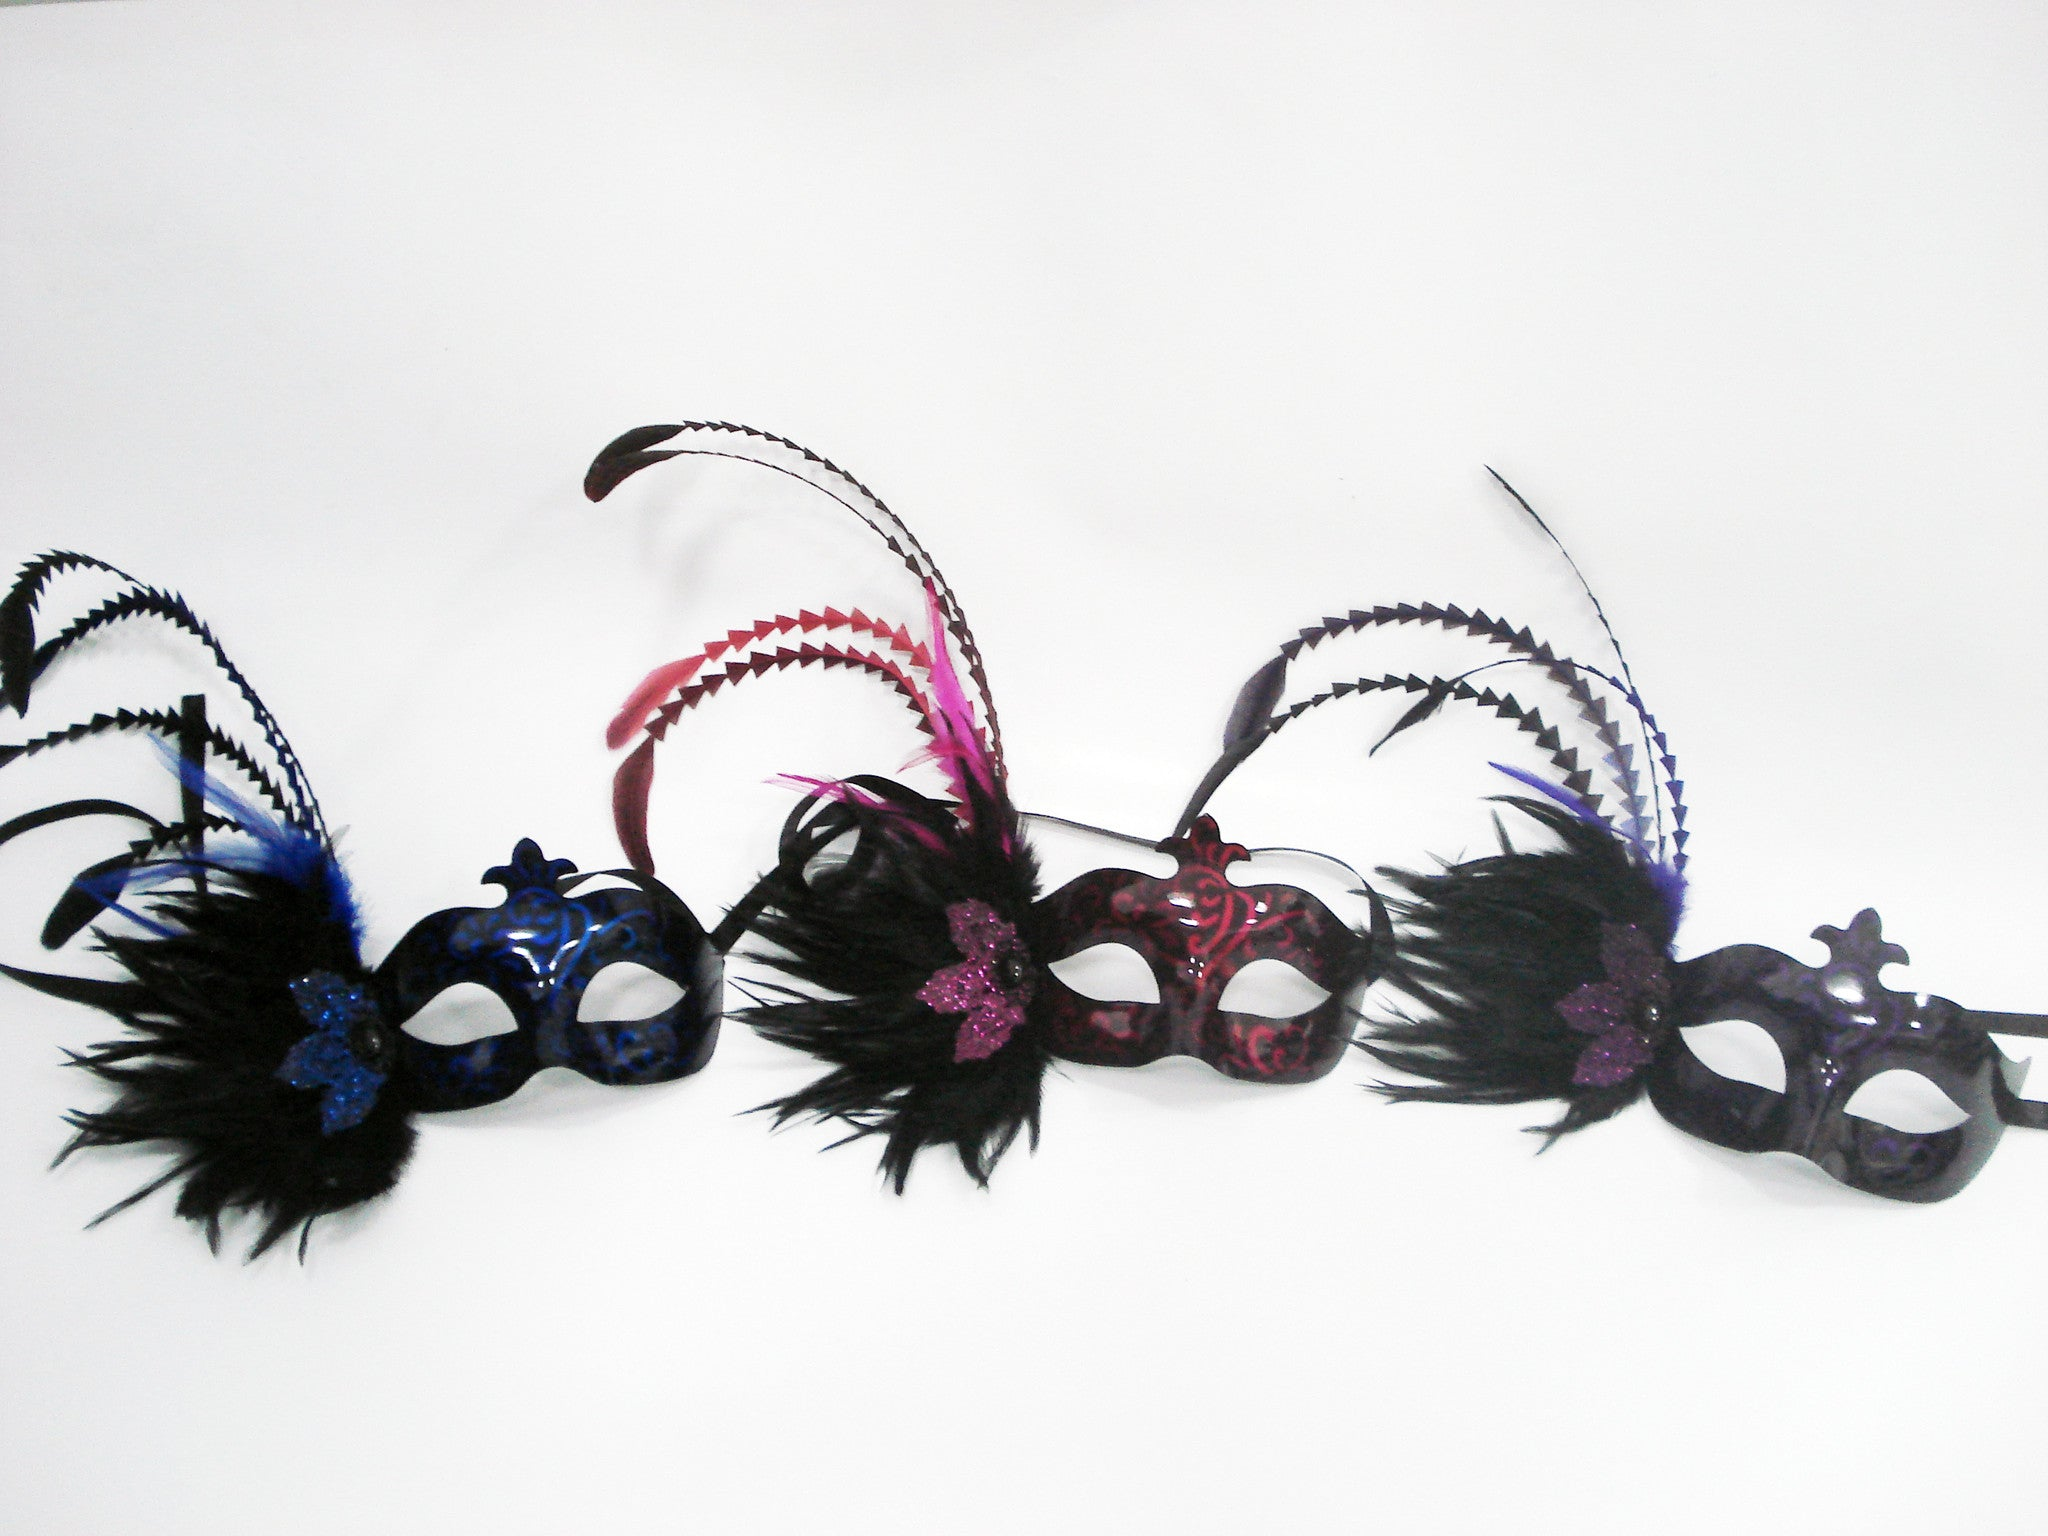 MK129 - Set of 3 Assorted Masks with Feathers - CLEARANCE 50% OFF LISTED PRICE SOLD AS SETS